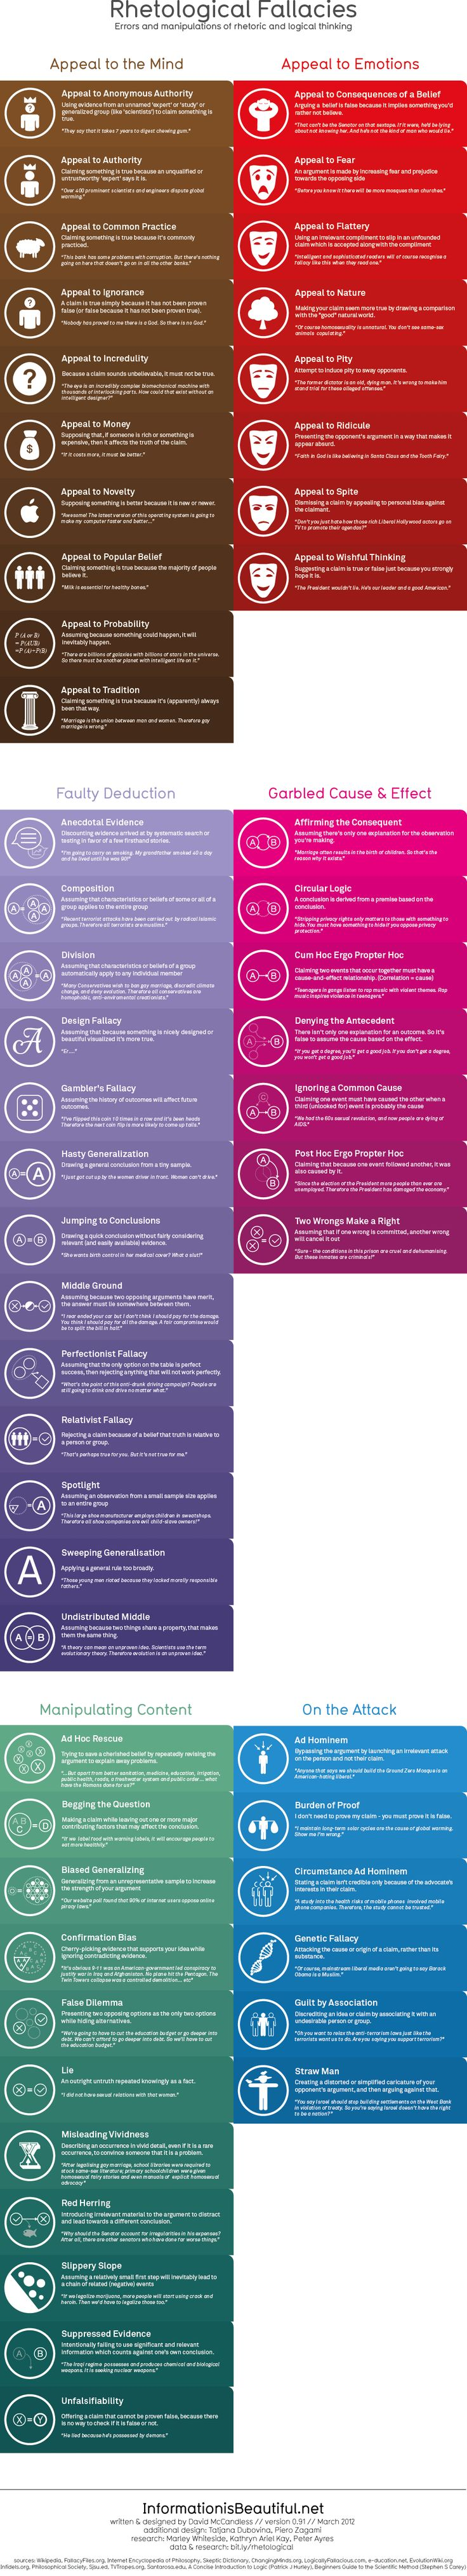 "[Infographic] Rhetological Fallacies - Rhetorical and Logical Fallacies: ""A brain-blending categorisation and visualisation [sic] of errors and manipulations of rhetoric and logical thinking. How many do you use?"""